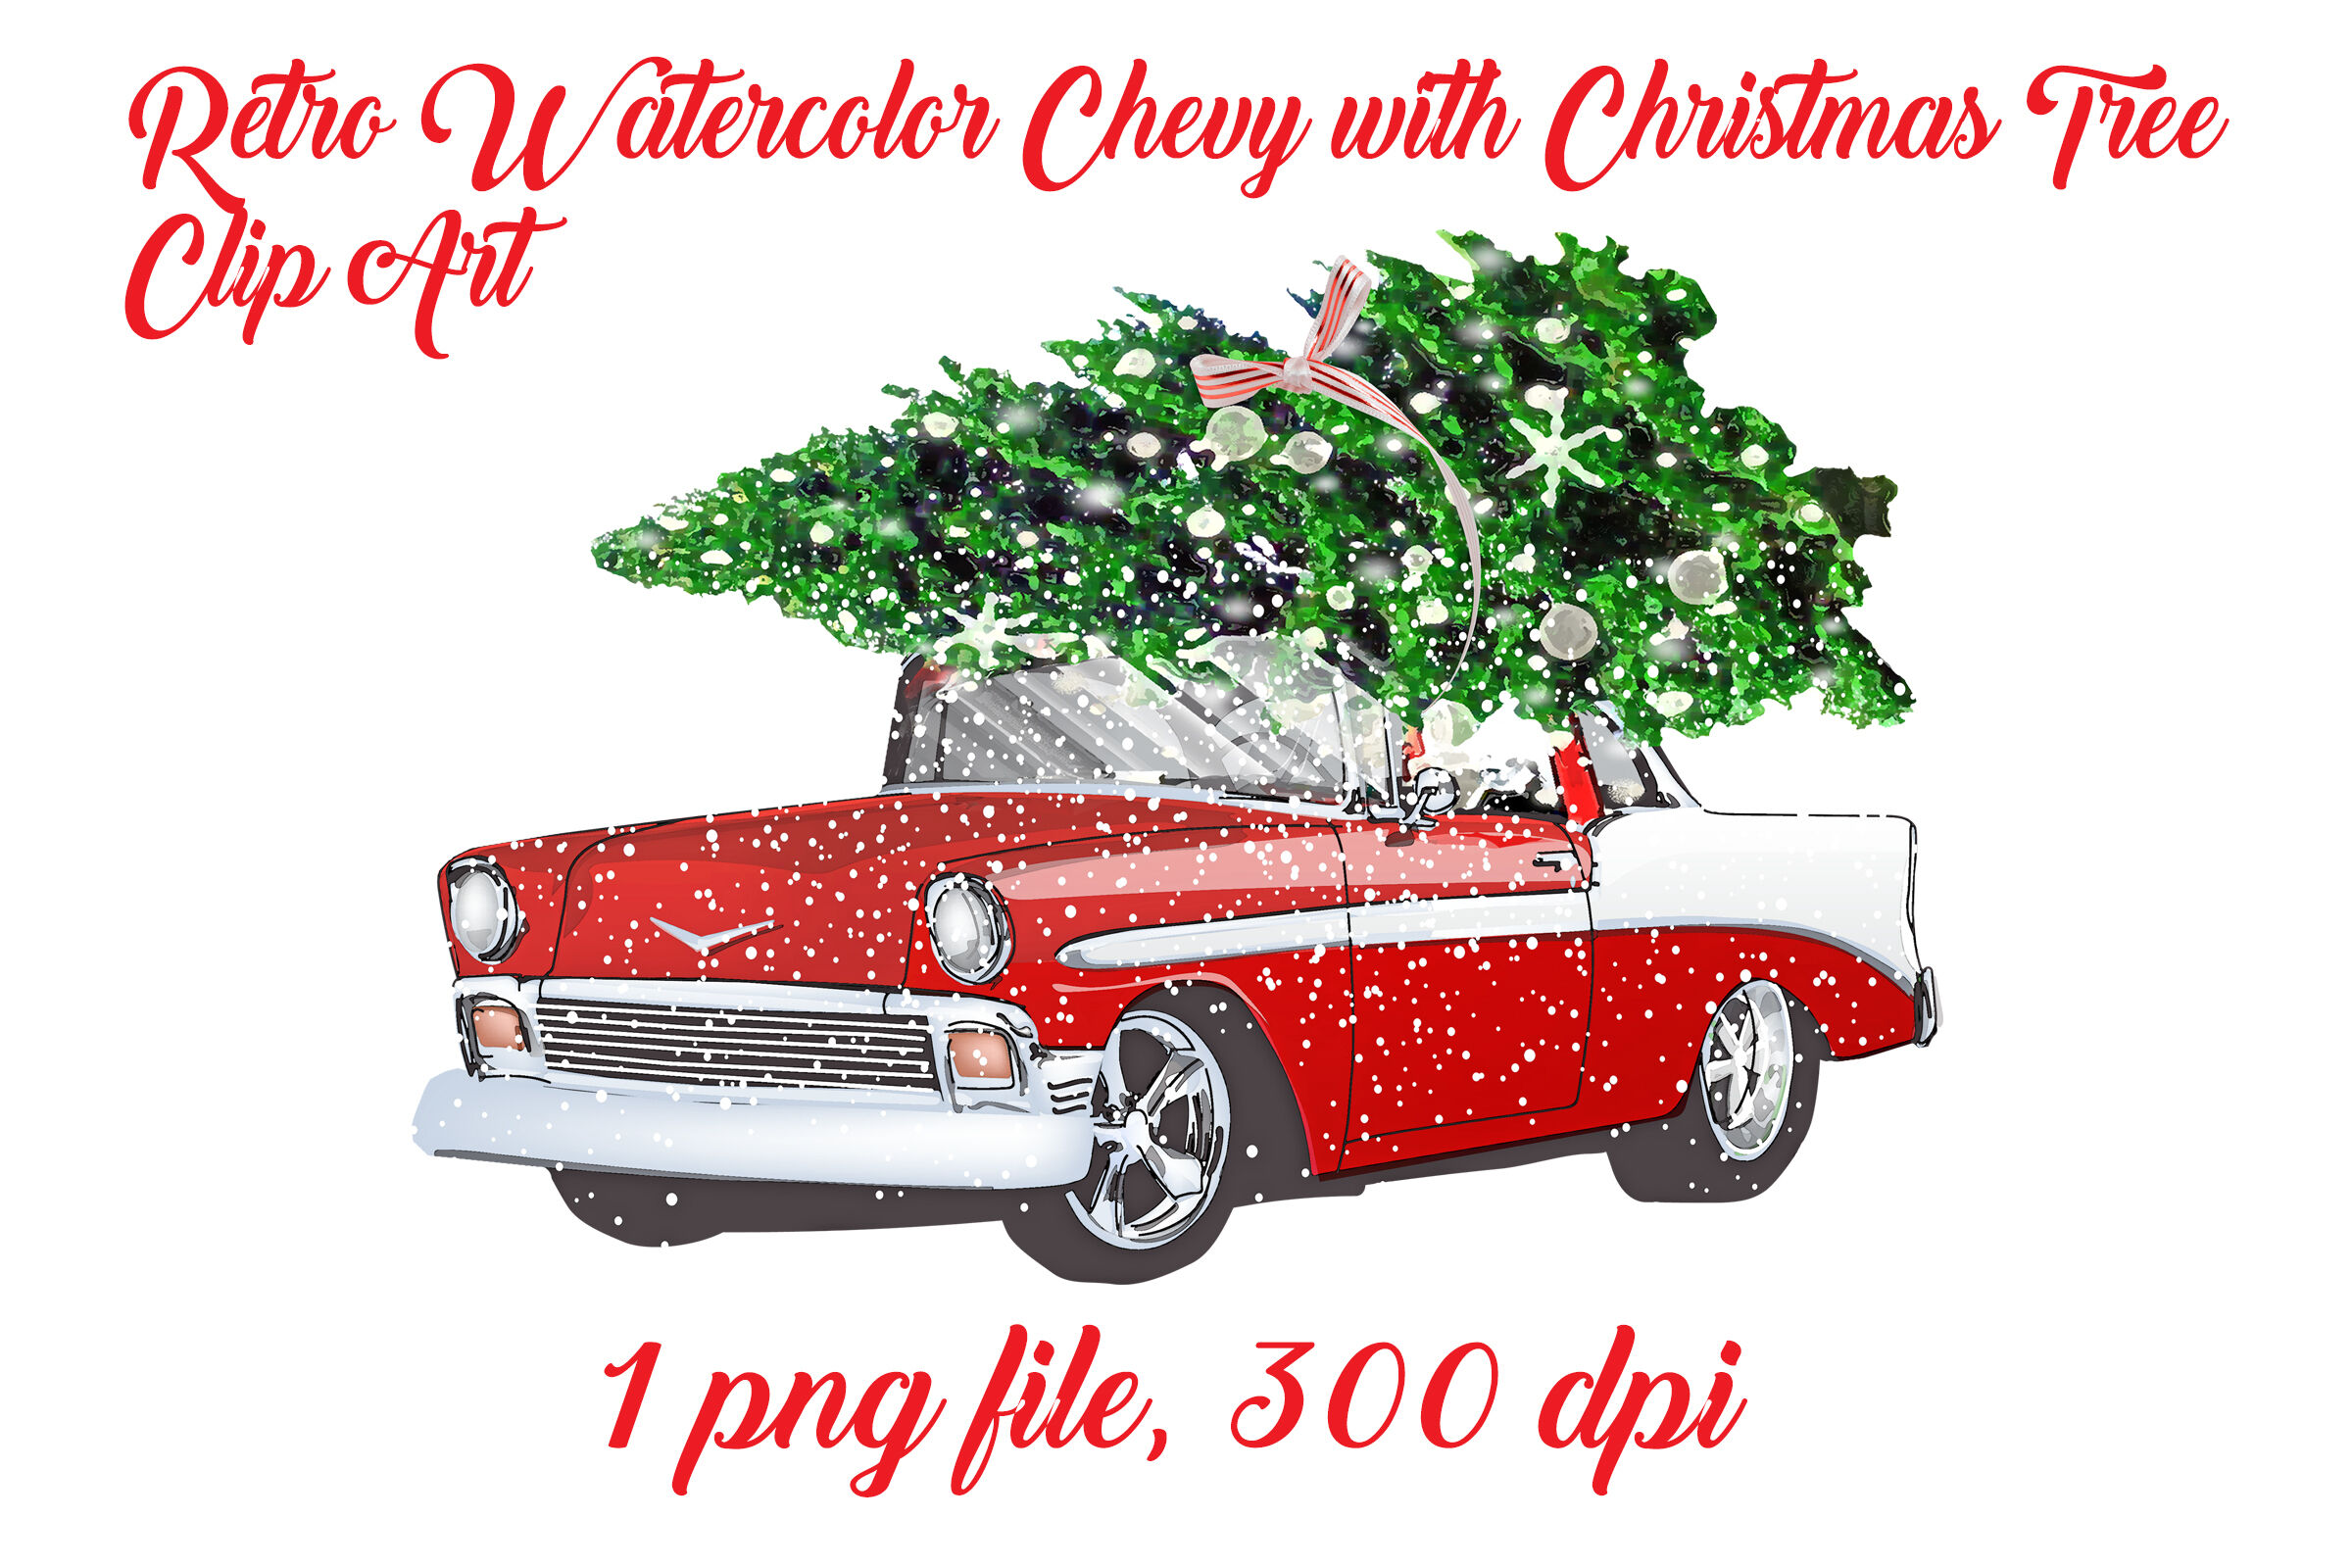 Retro Watercolor Chevy With Christmas Tree By Me And Amelie